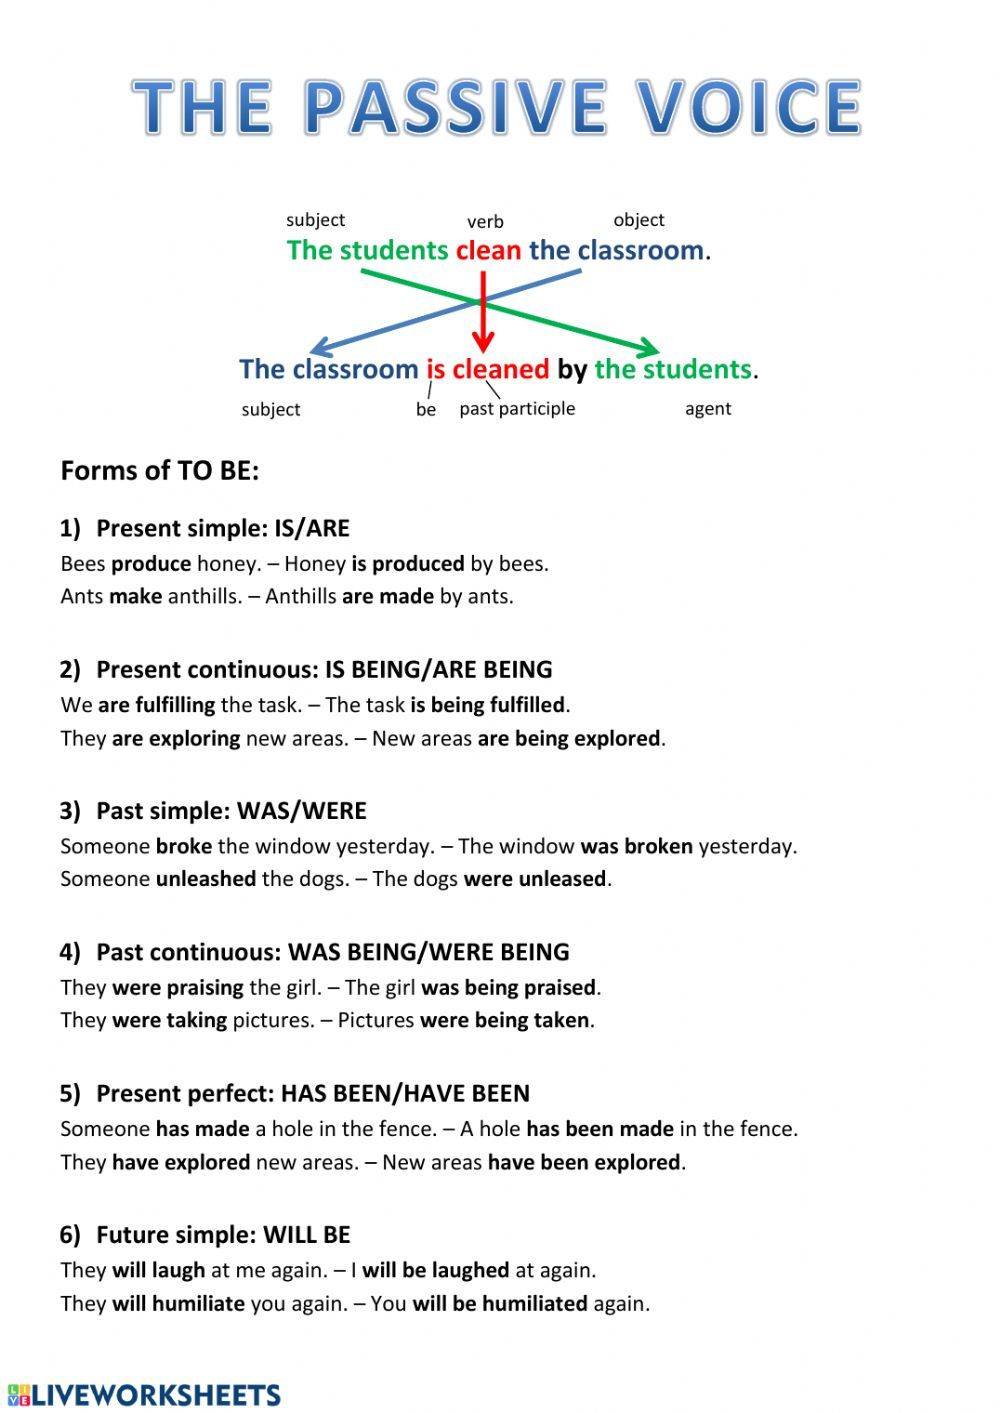 Passive Voice Explanation And Exercise Interactive Worksheet English Grammar Notes Interesting English Words Learn English Words